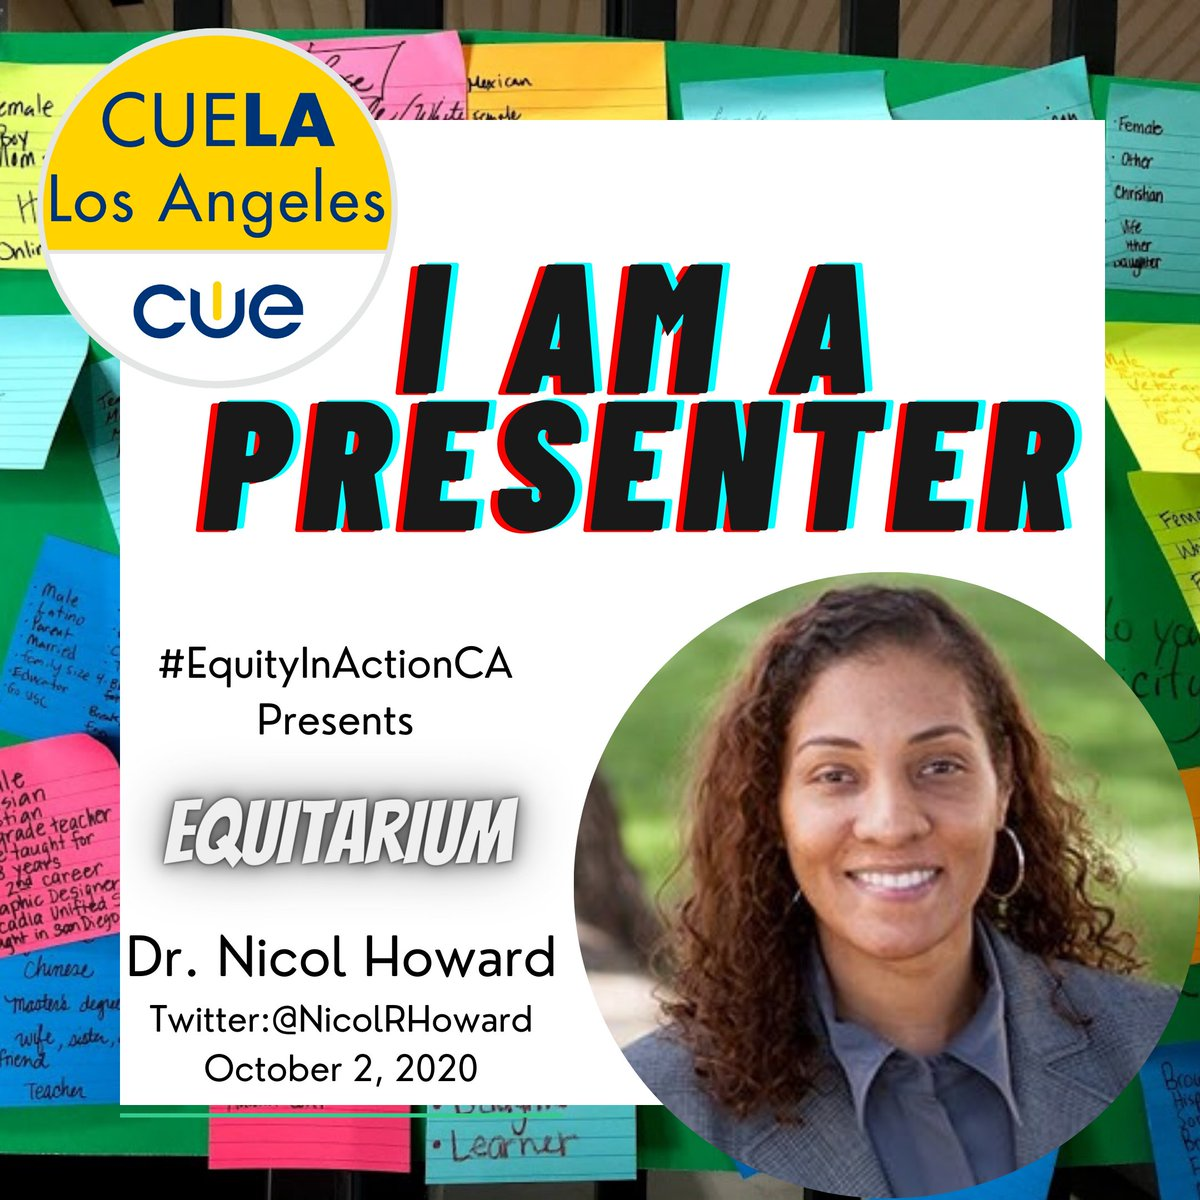 Are you attending #Equitarium2020?   🗣@NicolRHoward and @sheldoneakins are guest presenters. Bring your colleagues, friends, and family to this discussion on #equity and #inclusion.  Do you want to move towards action? You have to start somewhere.....Why not start HERE! https://t.co/IDq0ZAKkM0